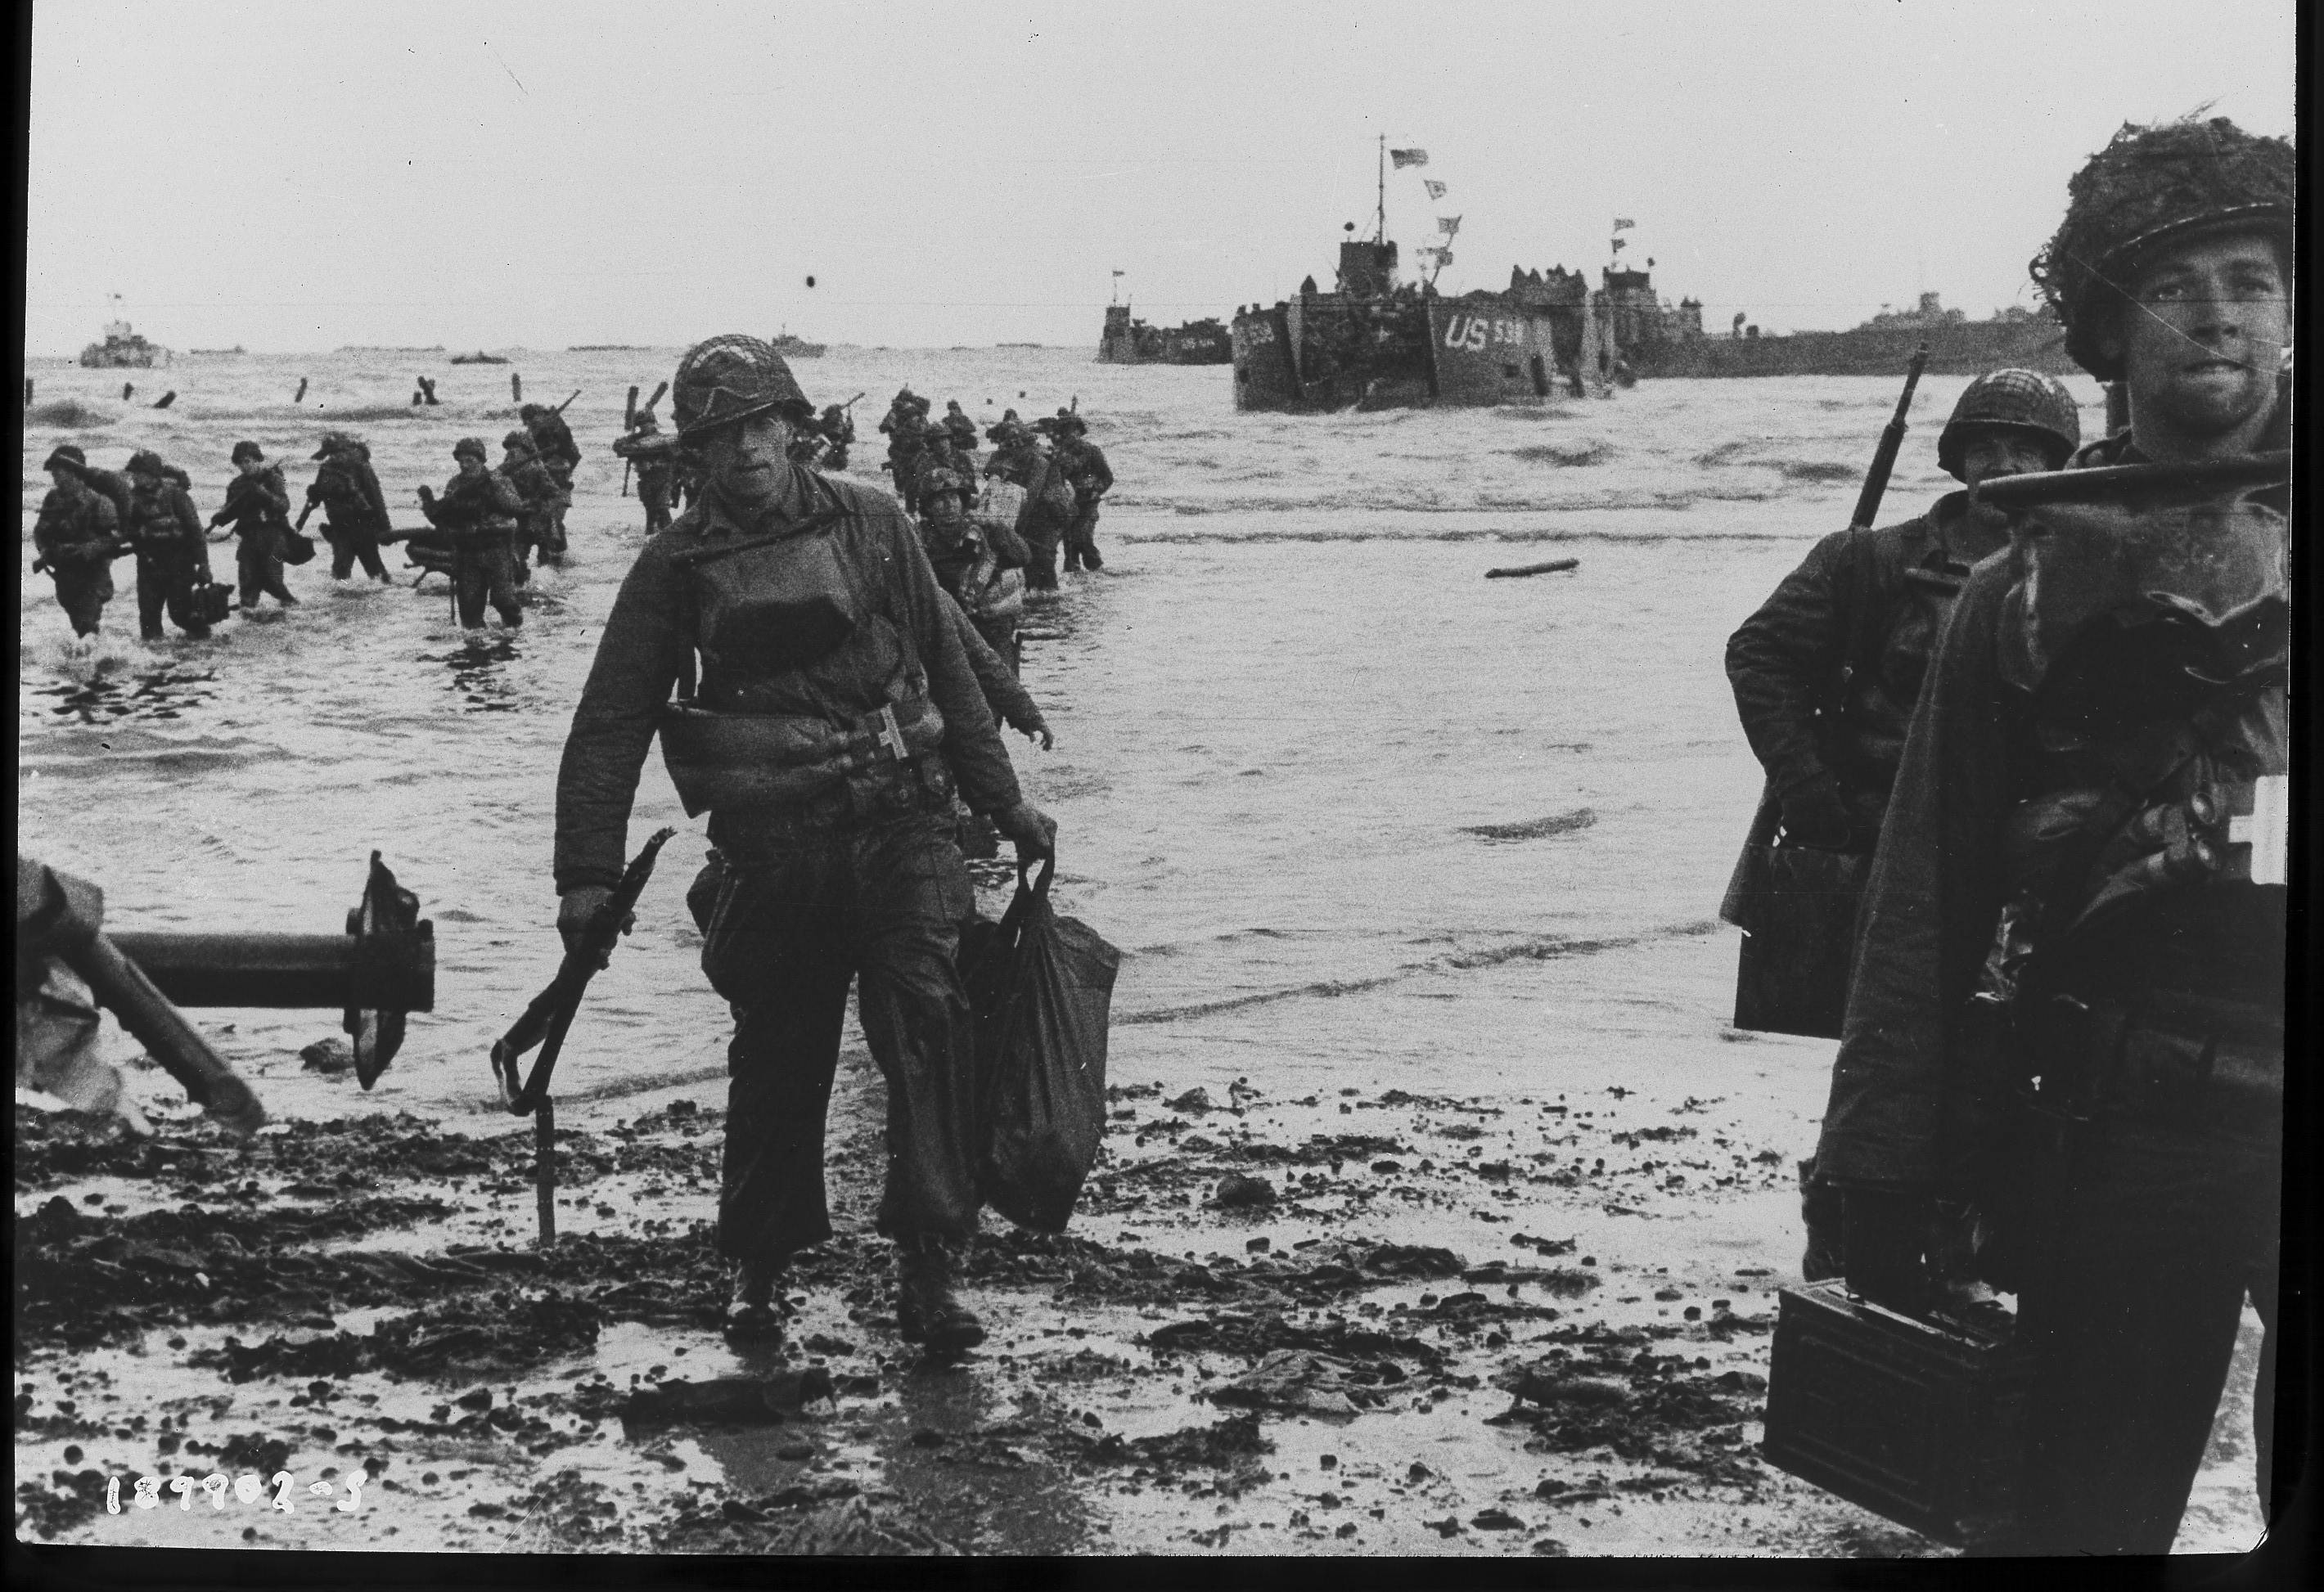 Looking back at the Allies invasion of Normandy